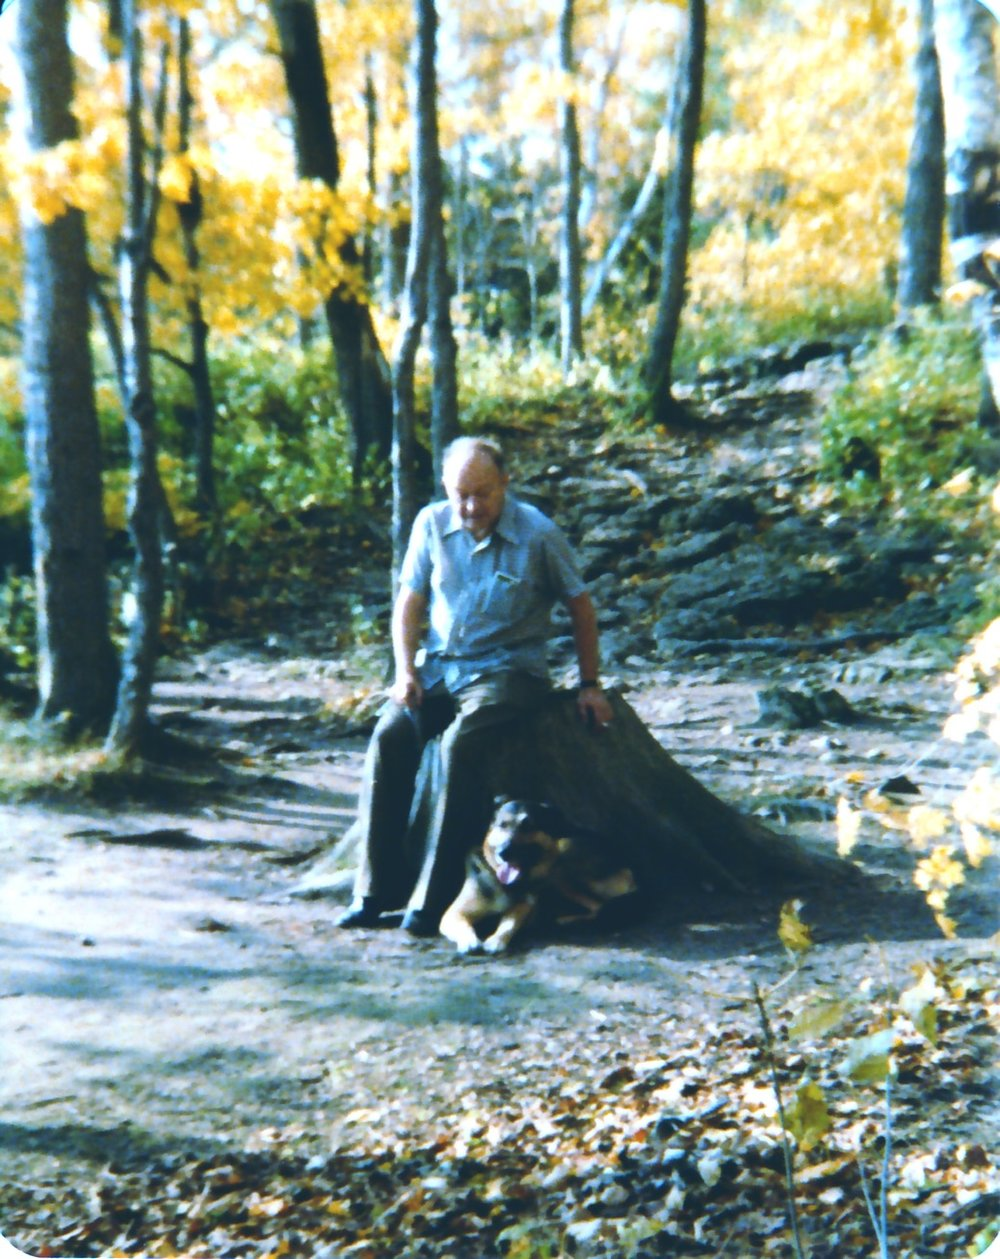 Dad back in the 1970s, having a smoke break [seemed a natural thing, then], sitting on a stump in the middle of the trail with Dru laying at his feet.